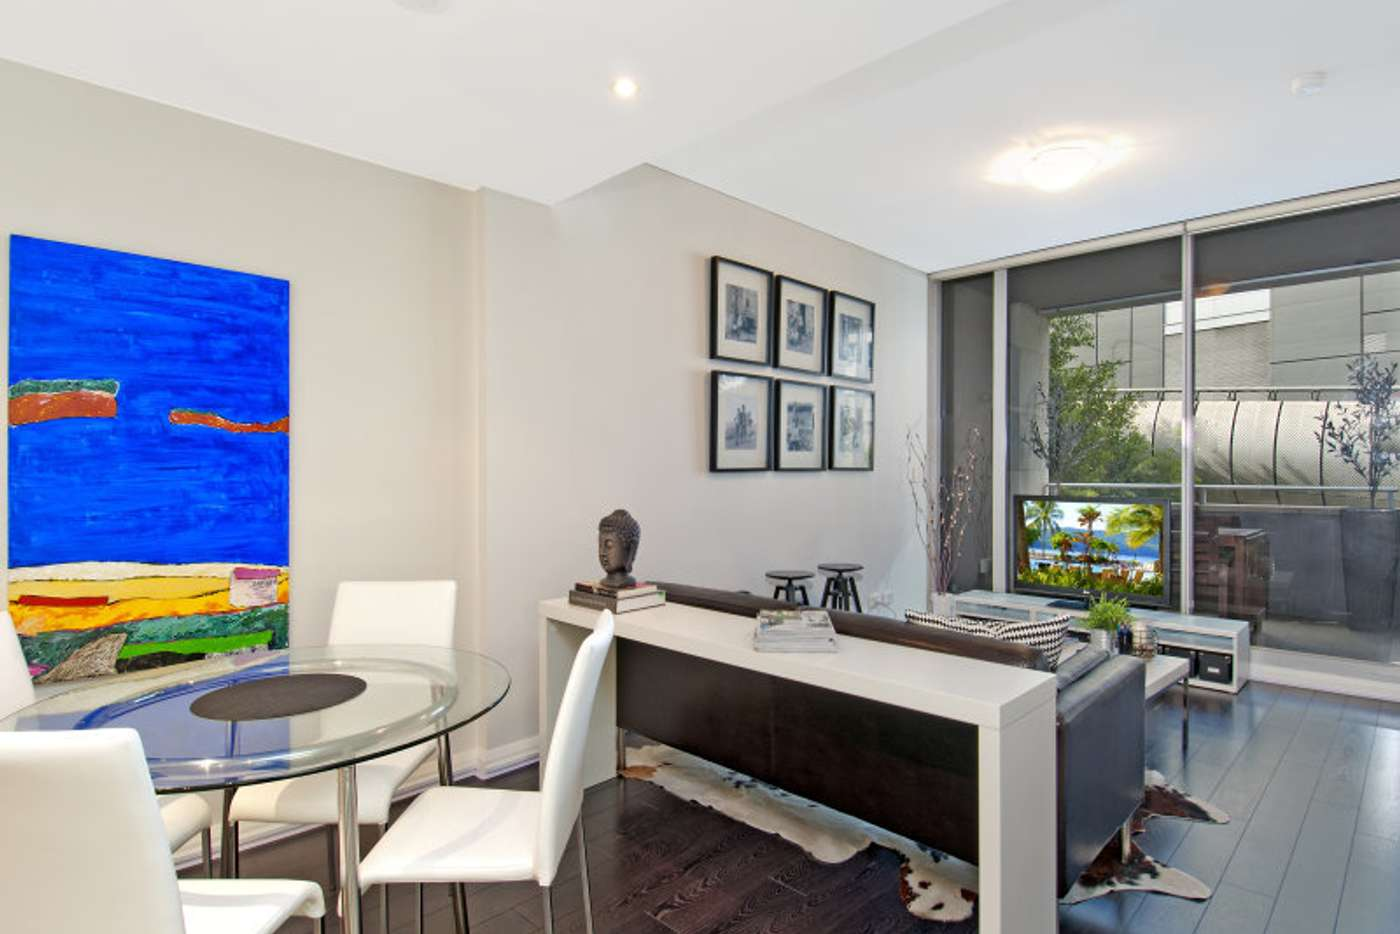 Main view of Homely apartment listing, 315/23 Shelley Street, Sydney NSW 2000